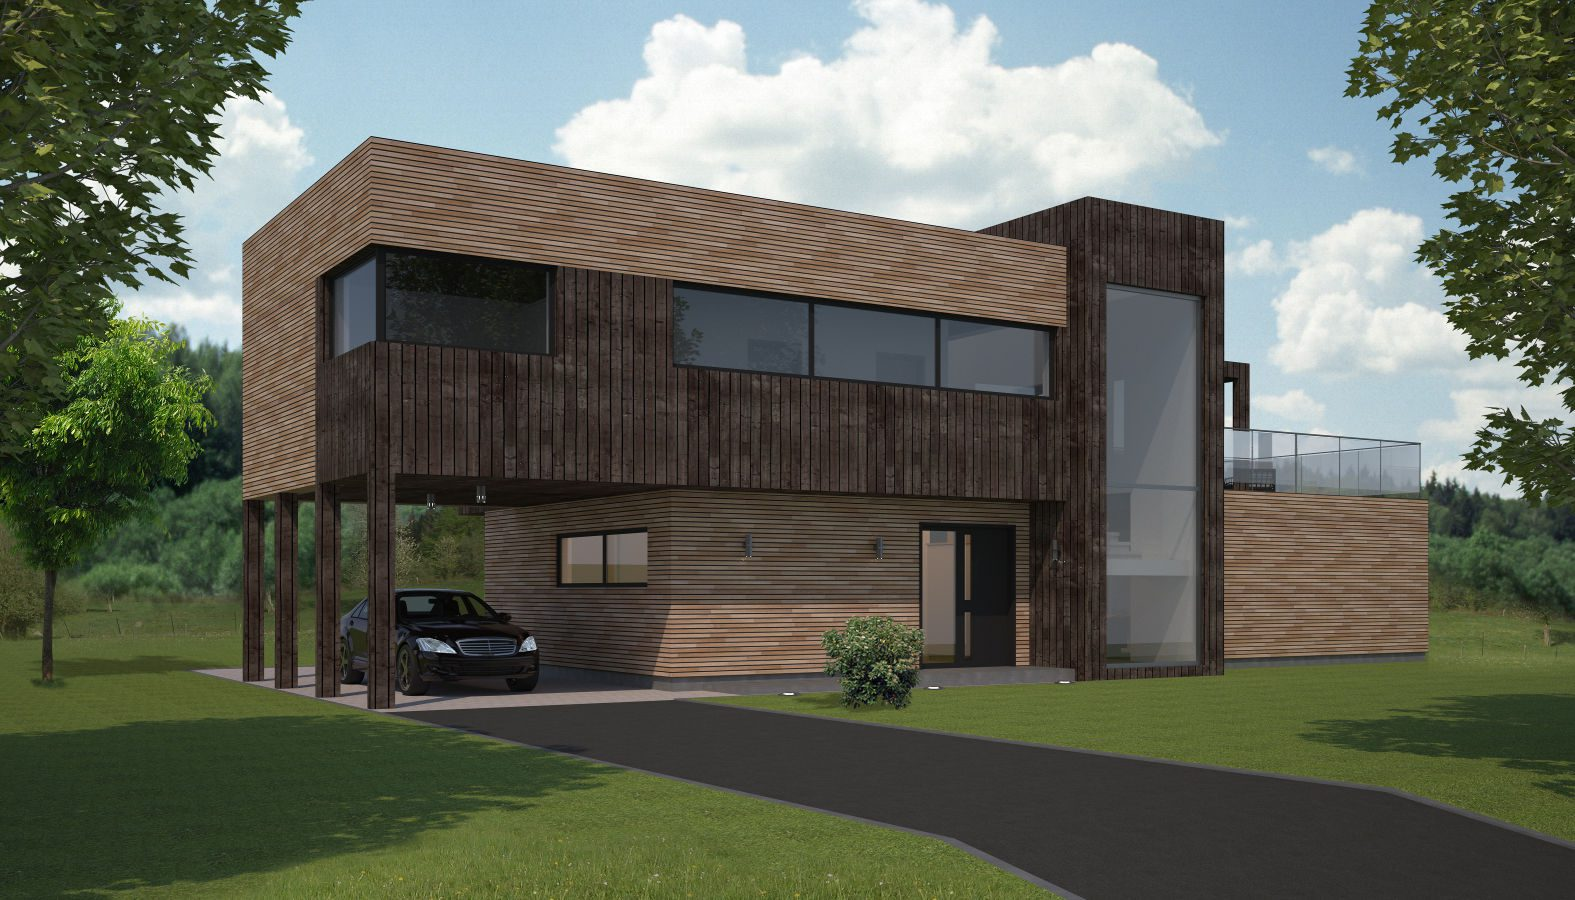 Exterior Architectural rendering for Norwegian client.